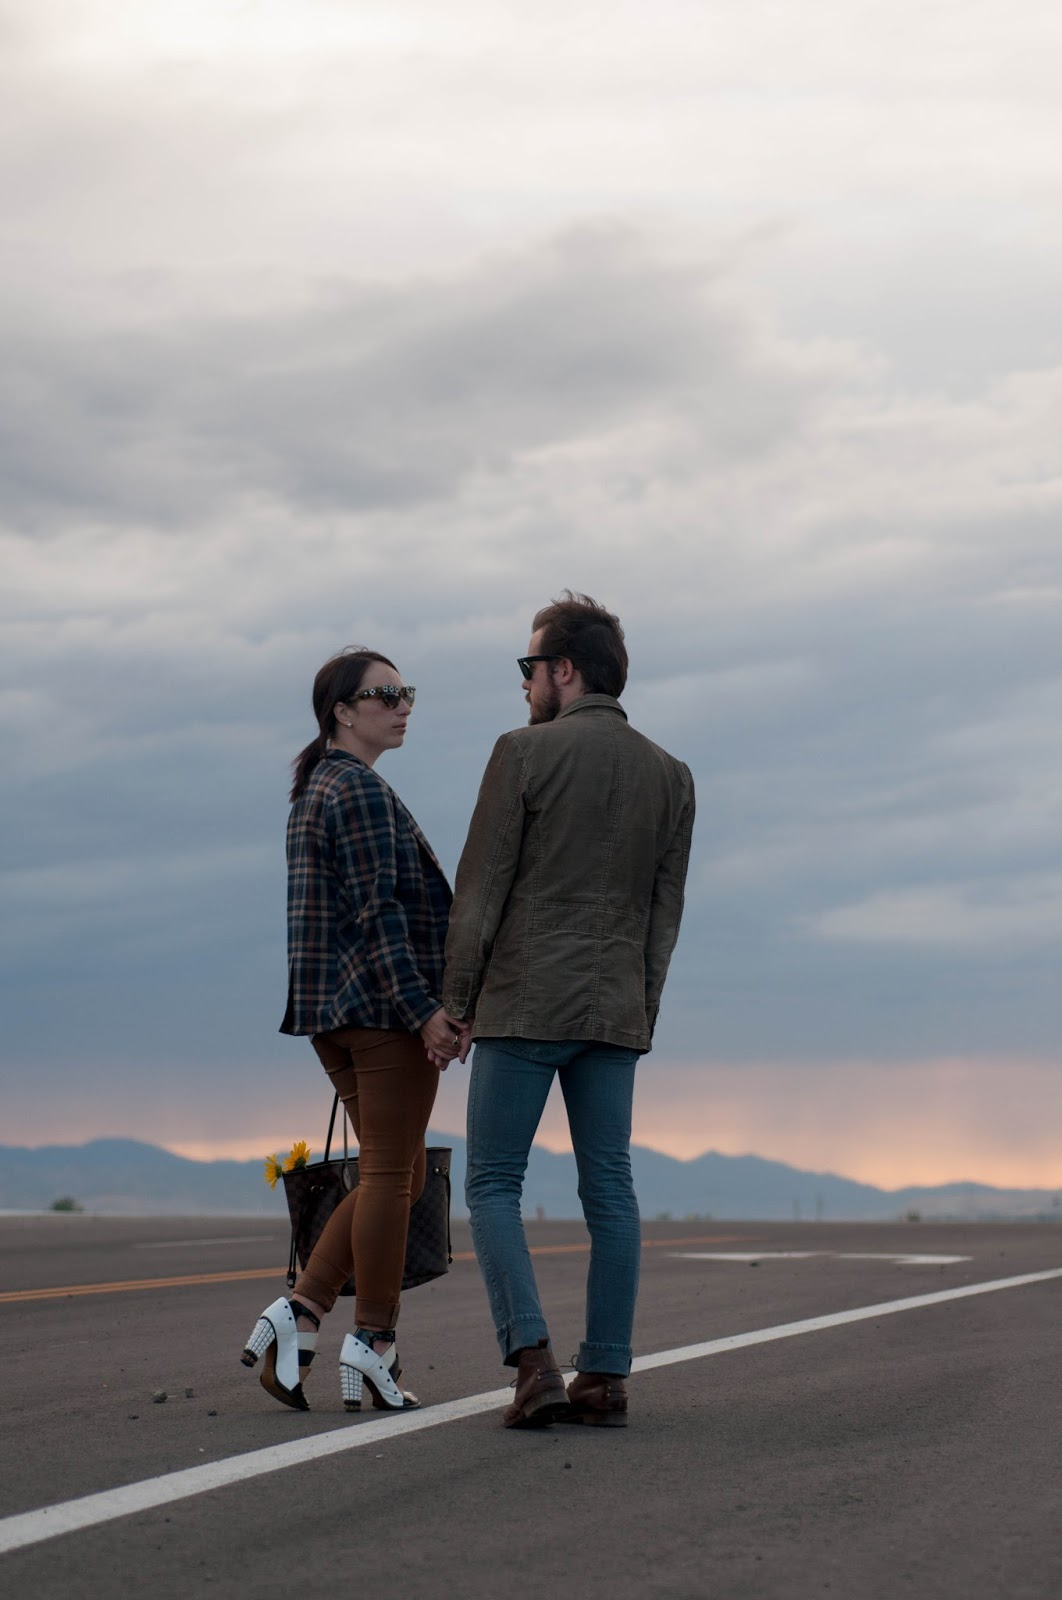 couples fashion, couples style blog, couples looks, fashion blog, utah fashion blog, utah bloggers